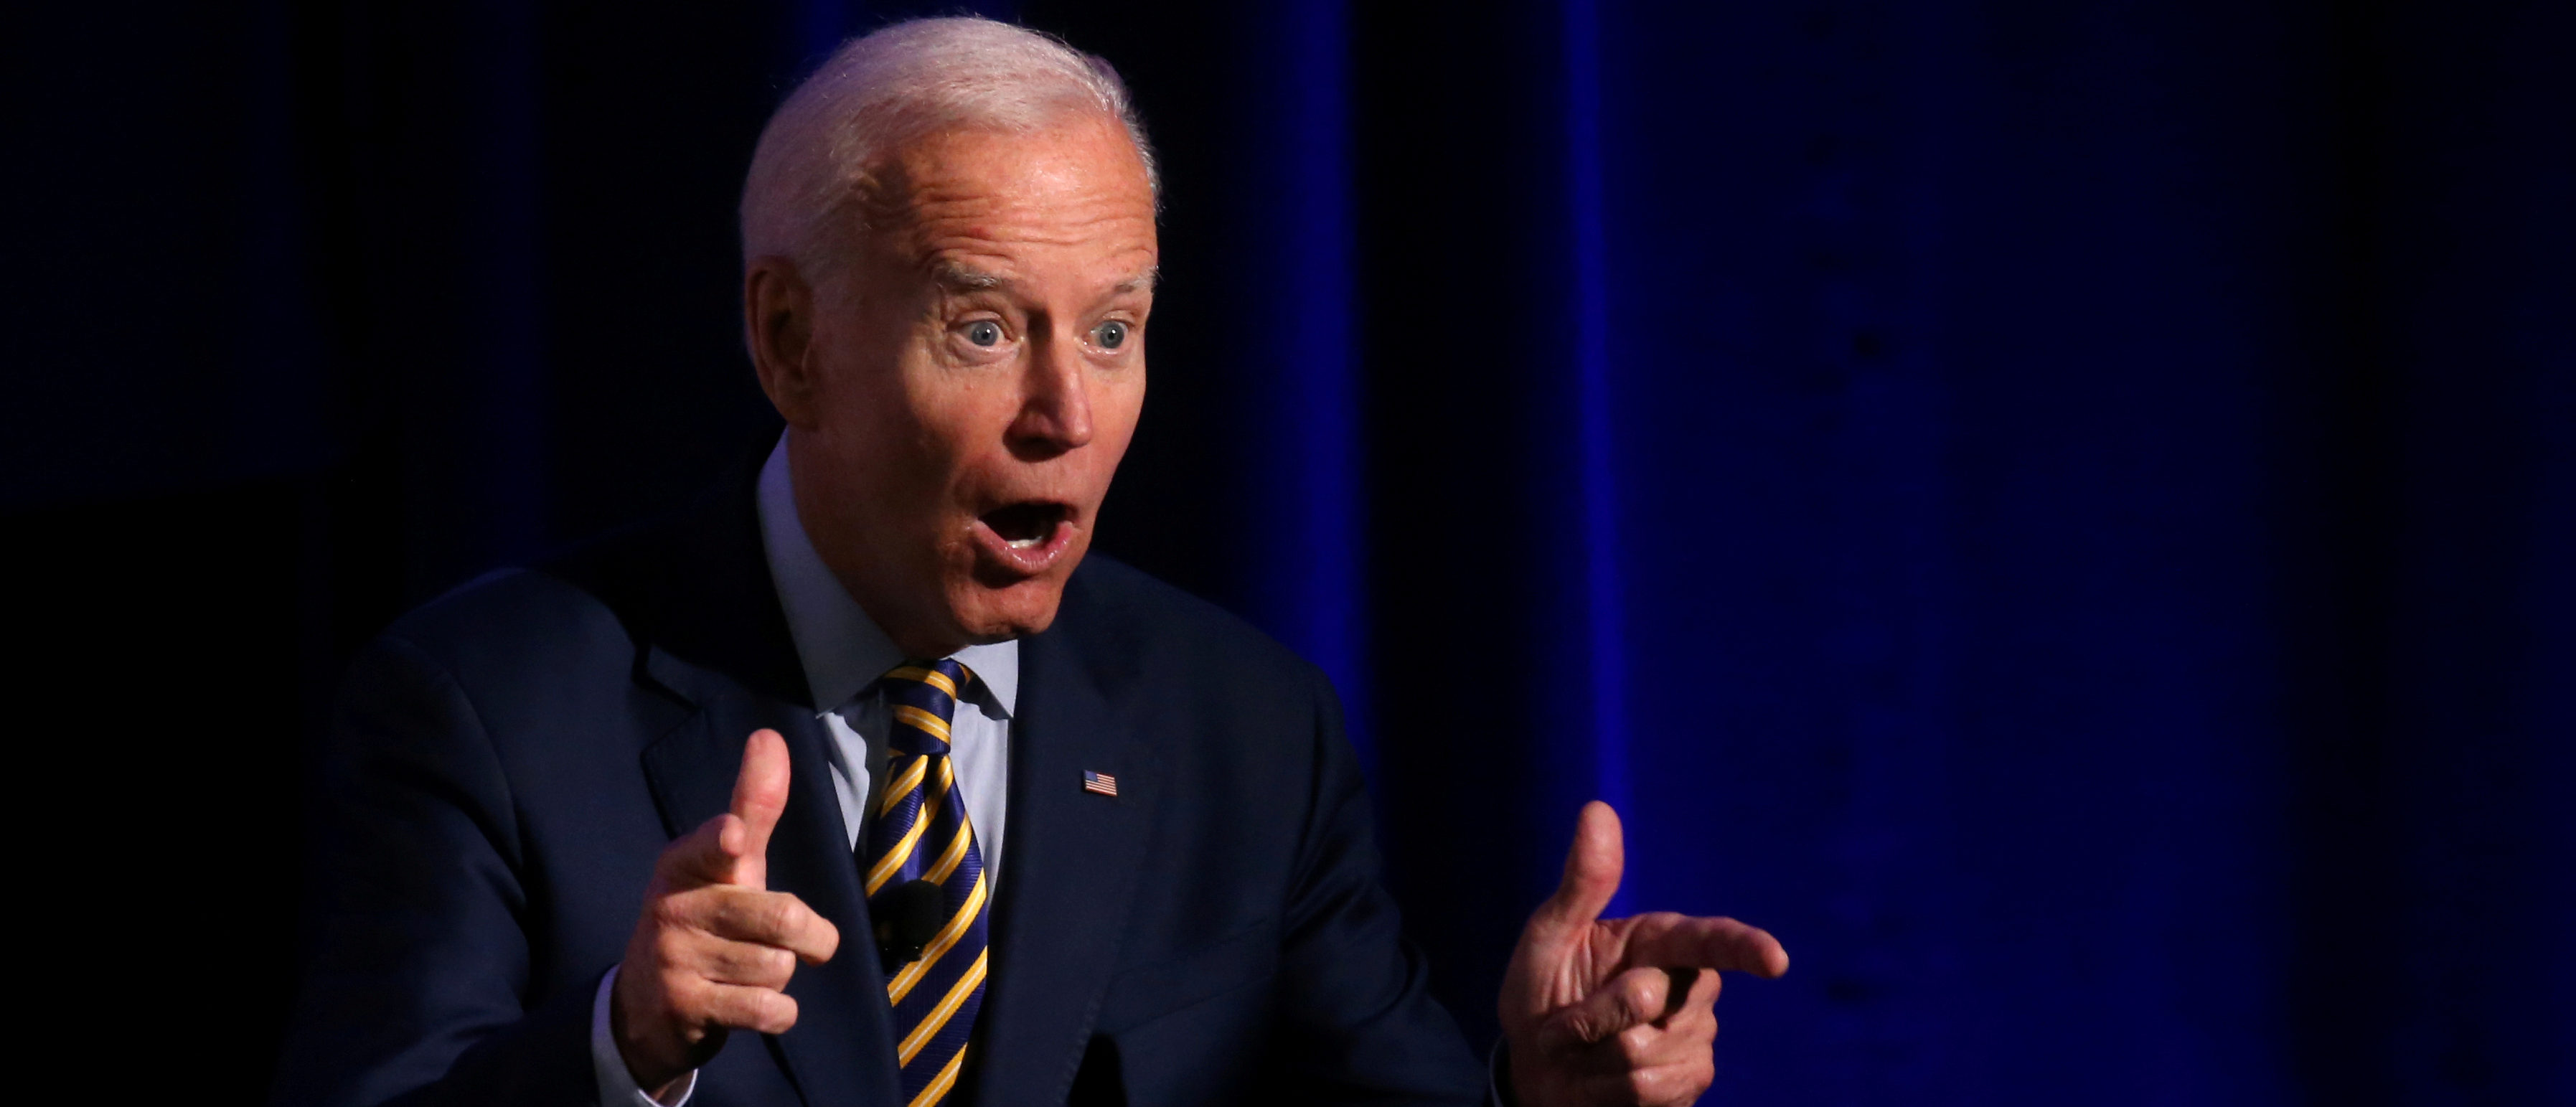 Democratic candidate for president, former Vice President Joe Biden, tells the audience to vote as he leaves the stage after participating in We Decide: 2020 Election Membership Forum, an event put on by Planned Parenthood in the University of South Carolina's Alumni Center in Columbia, South Carolina, U.S., June 22, 2019. REUTERS/Leah Millis